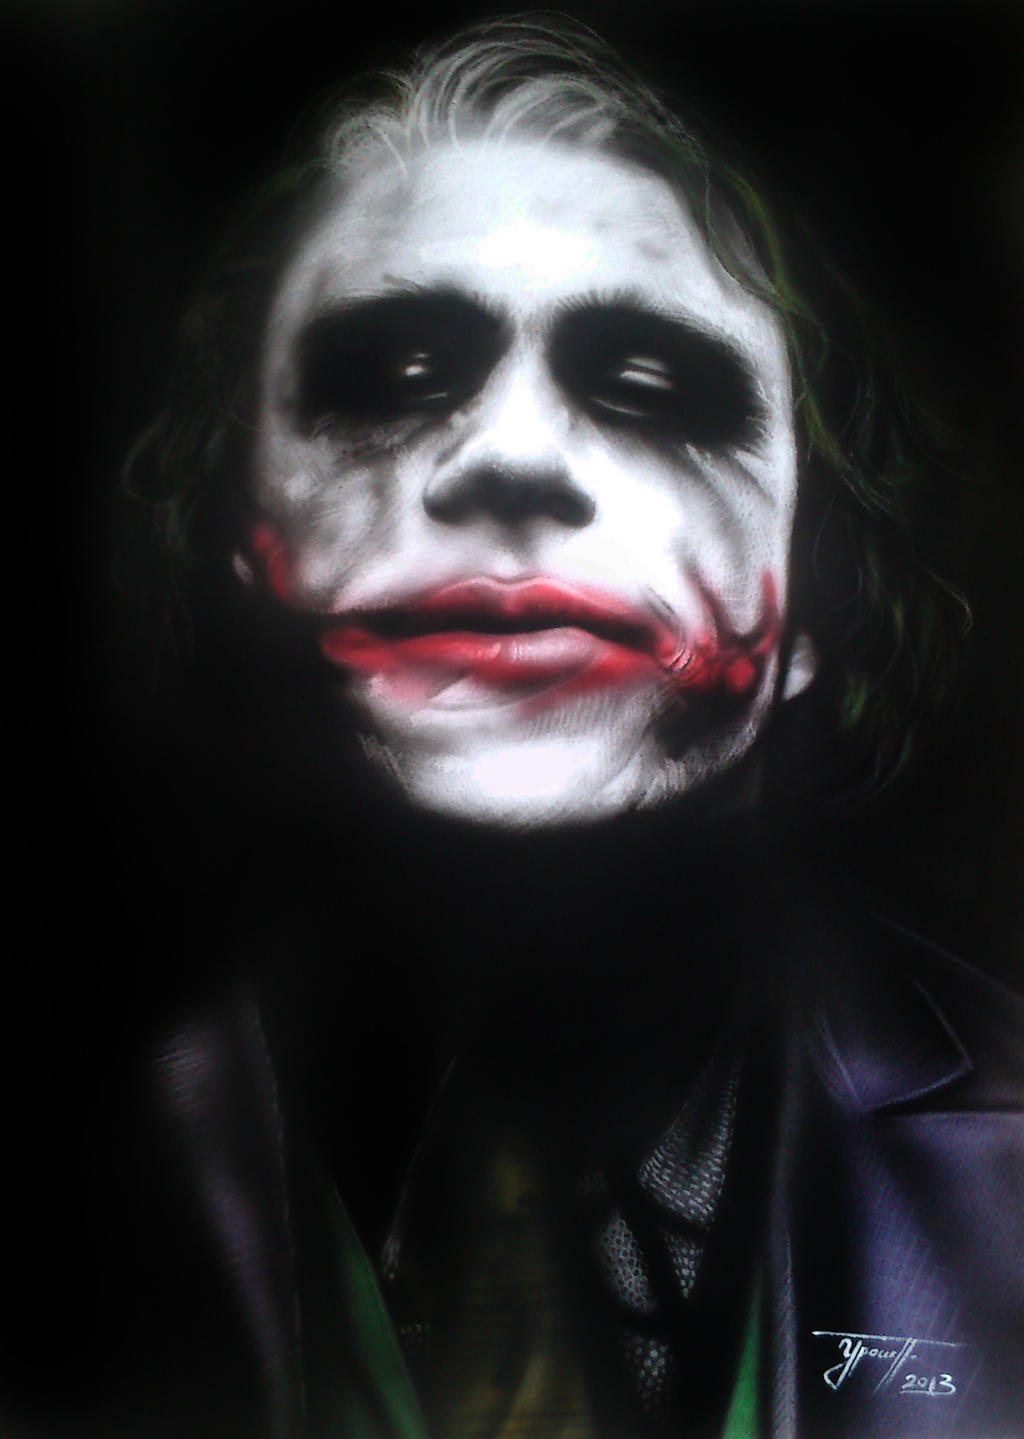 Airbrush Joker Wallpaper